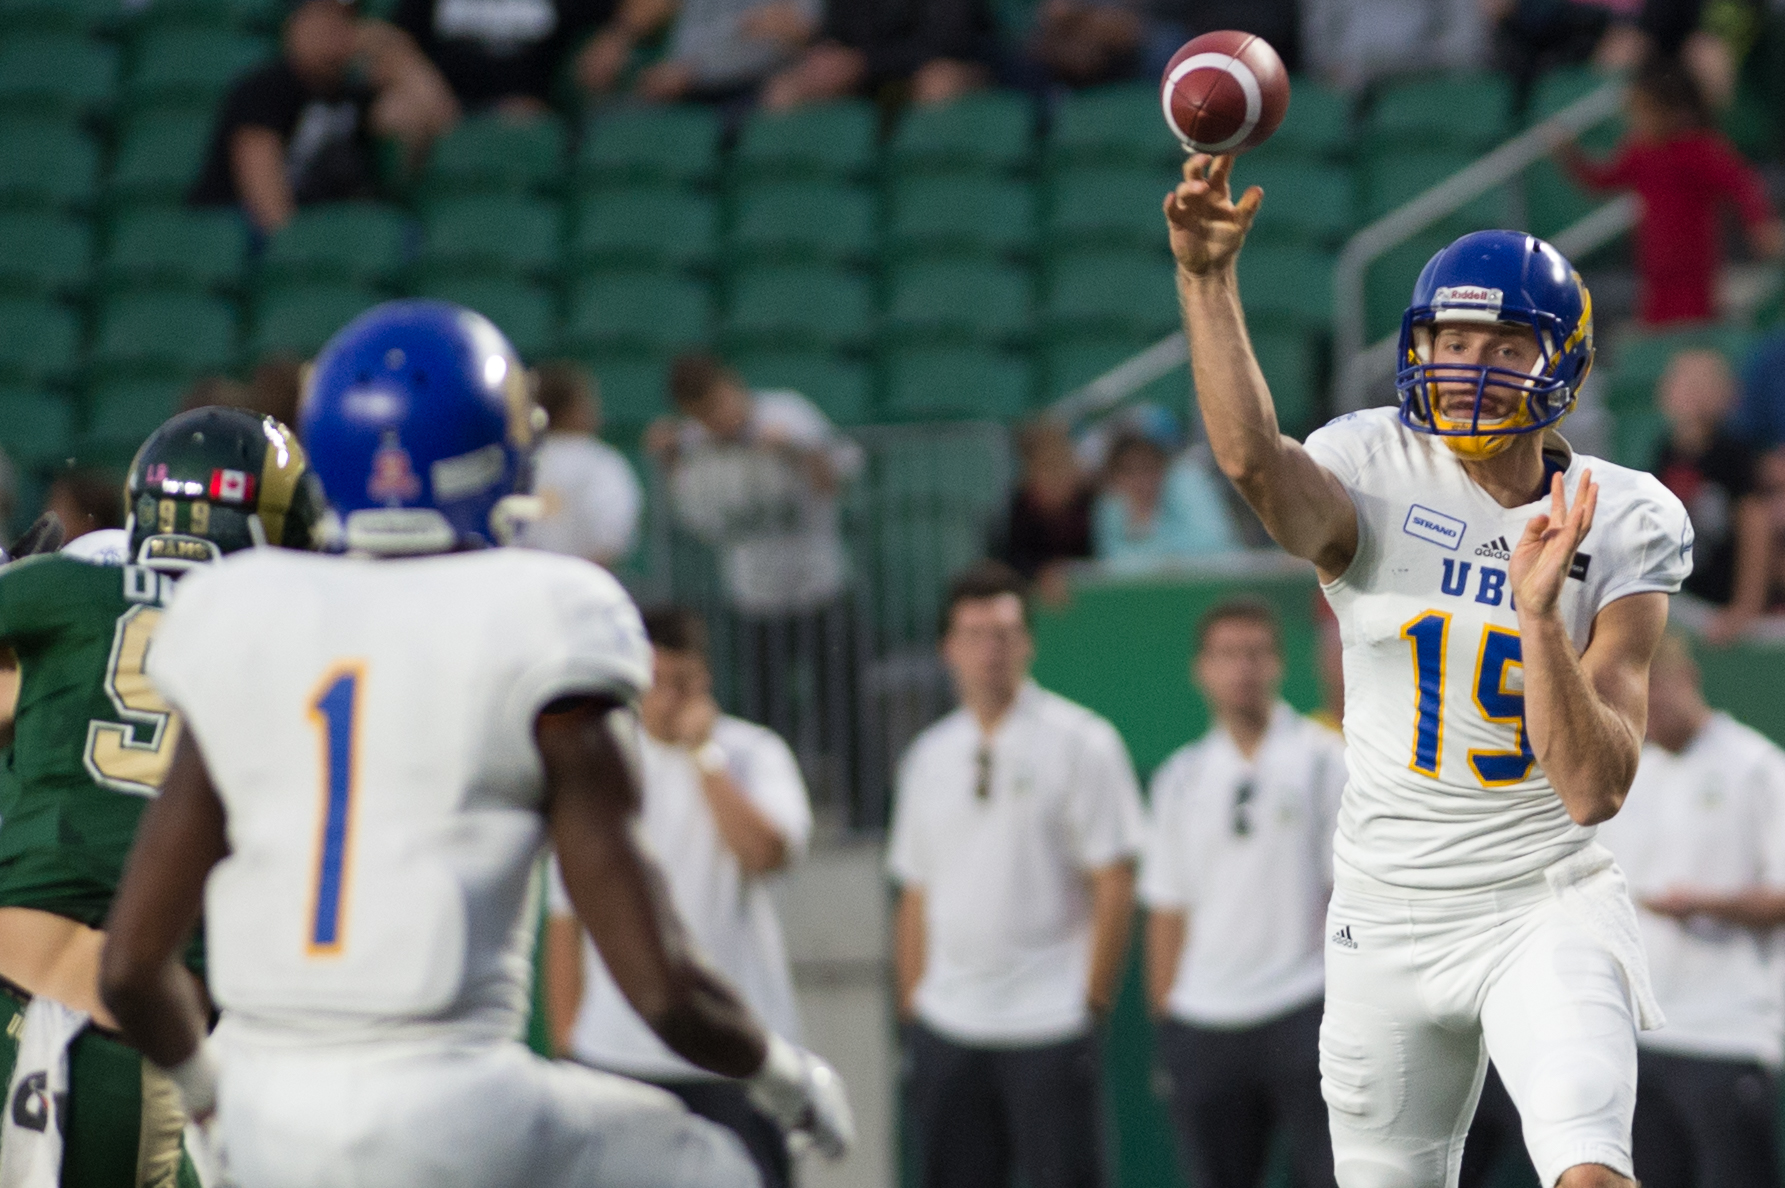 UBC's Michael O'Connor looks for the open throw to receiver Trivel Pinto.